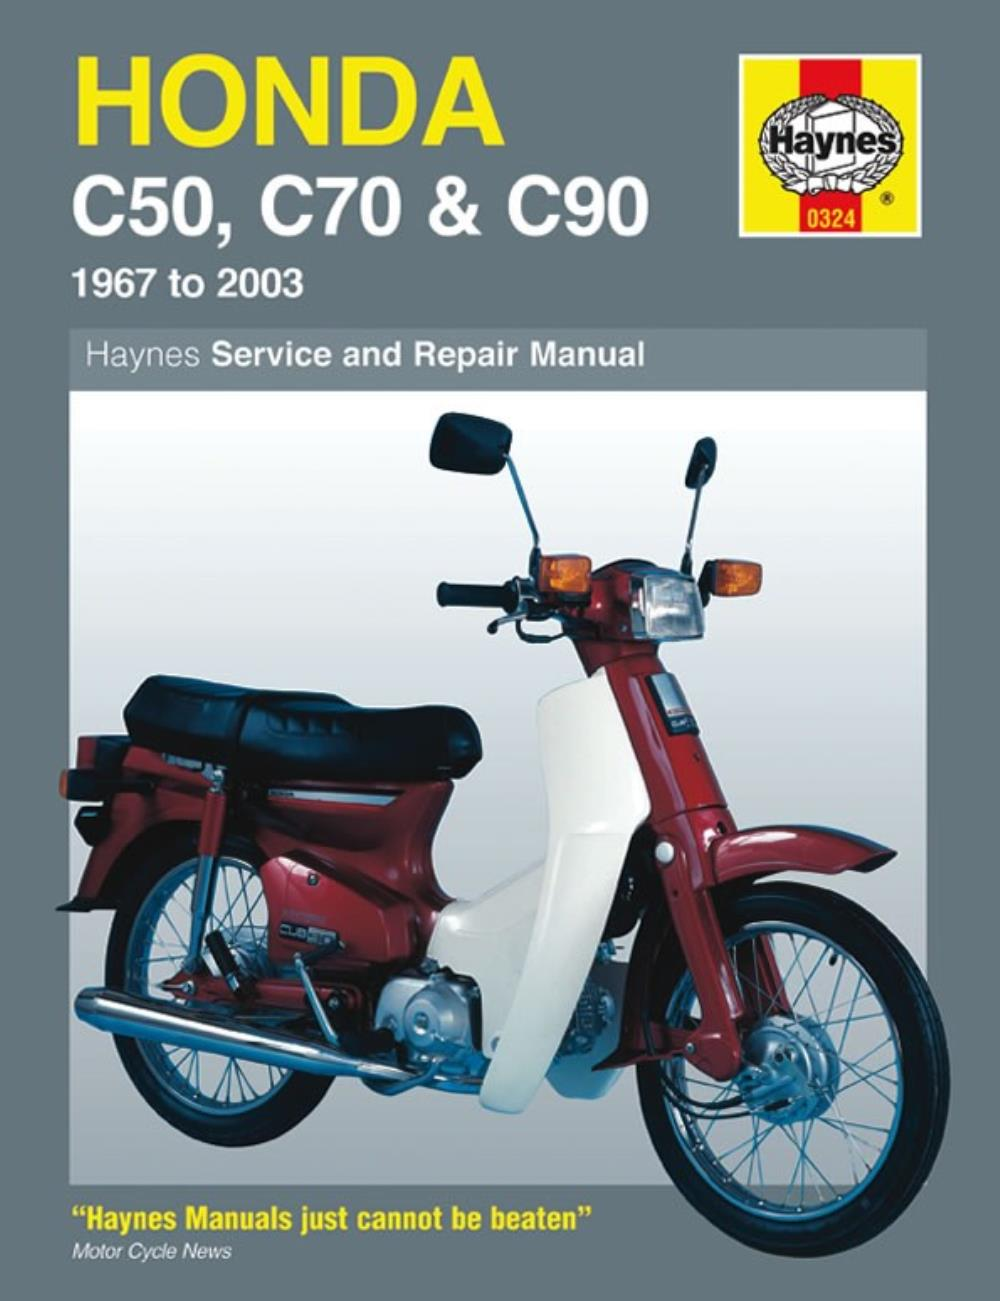 Workshop Manual Honda C50 1967-1985, C70 1972-1986, C90 1967-